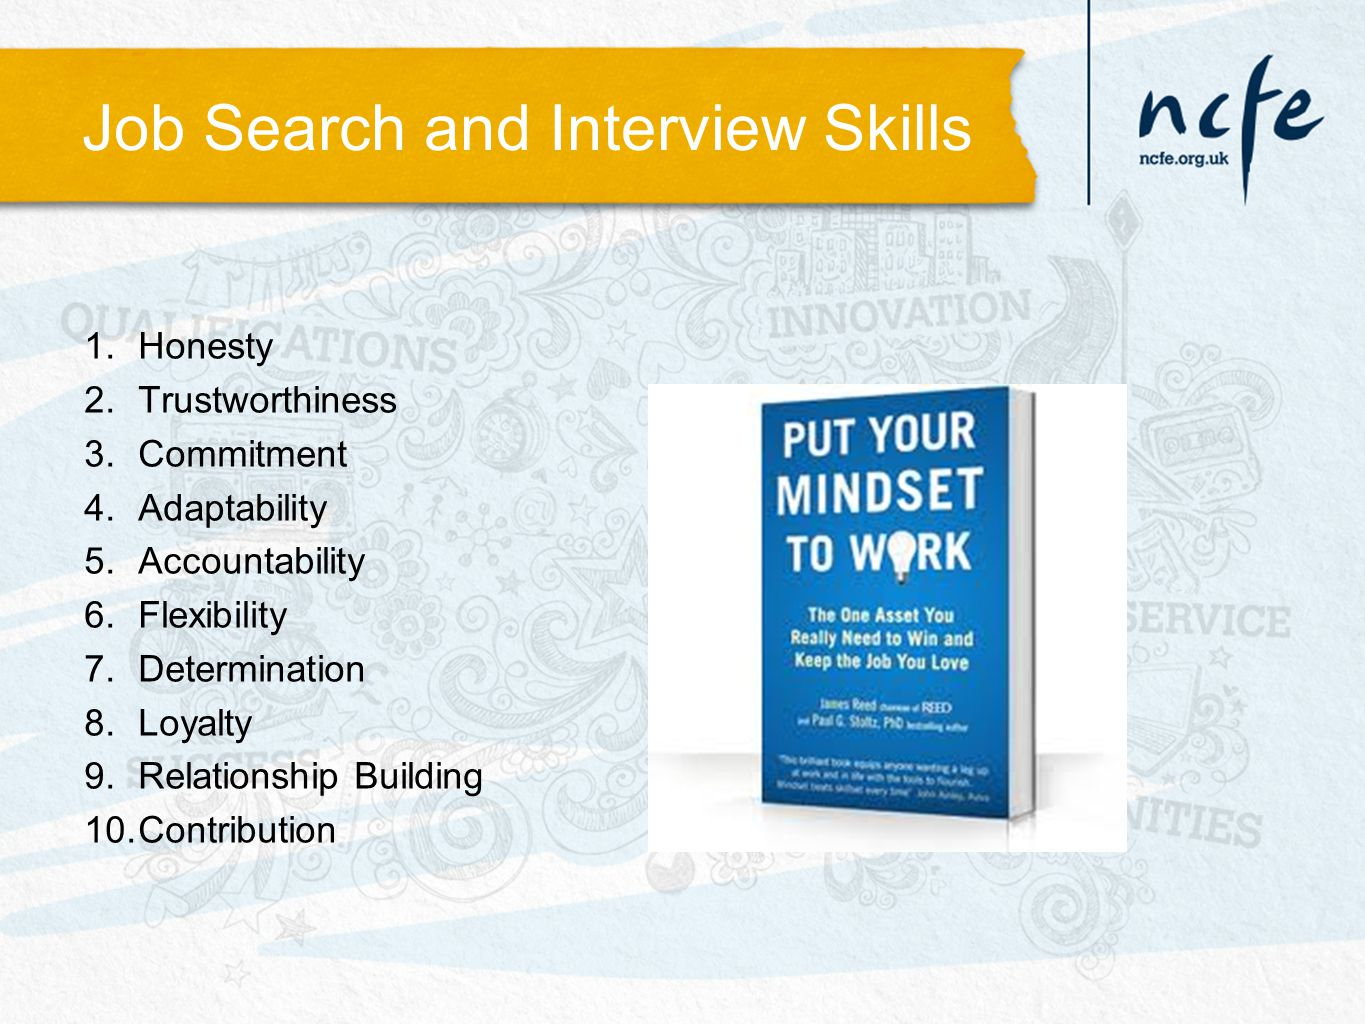 Job Search and Interview Skills 1.Honesty 2.Trustworthiness 3.Commitment 4.Adaptability 5.Accountability 6.Flexibility 7.Determination 8.Loyalty 9.Relationship Building 10.Contribution